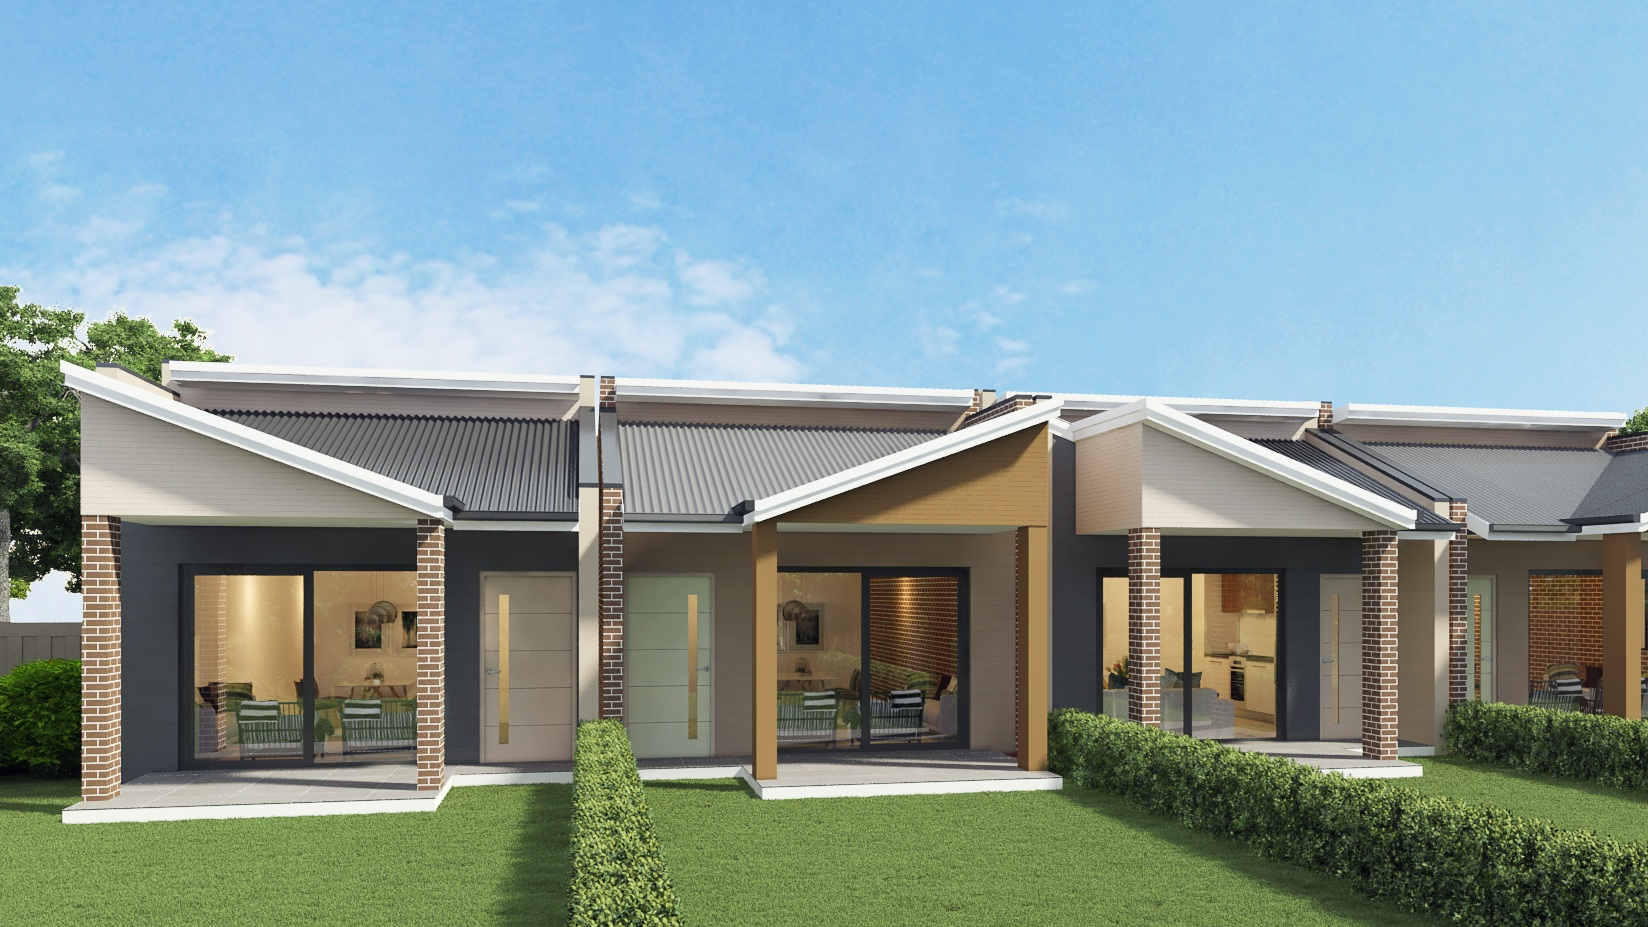 The Terrace 32 - 2 Bed | 2 Bath | 1 Car Garage5x32m Laneway Lots